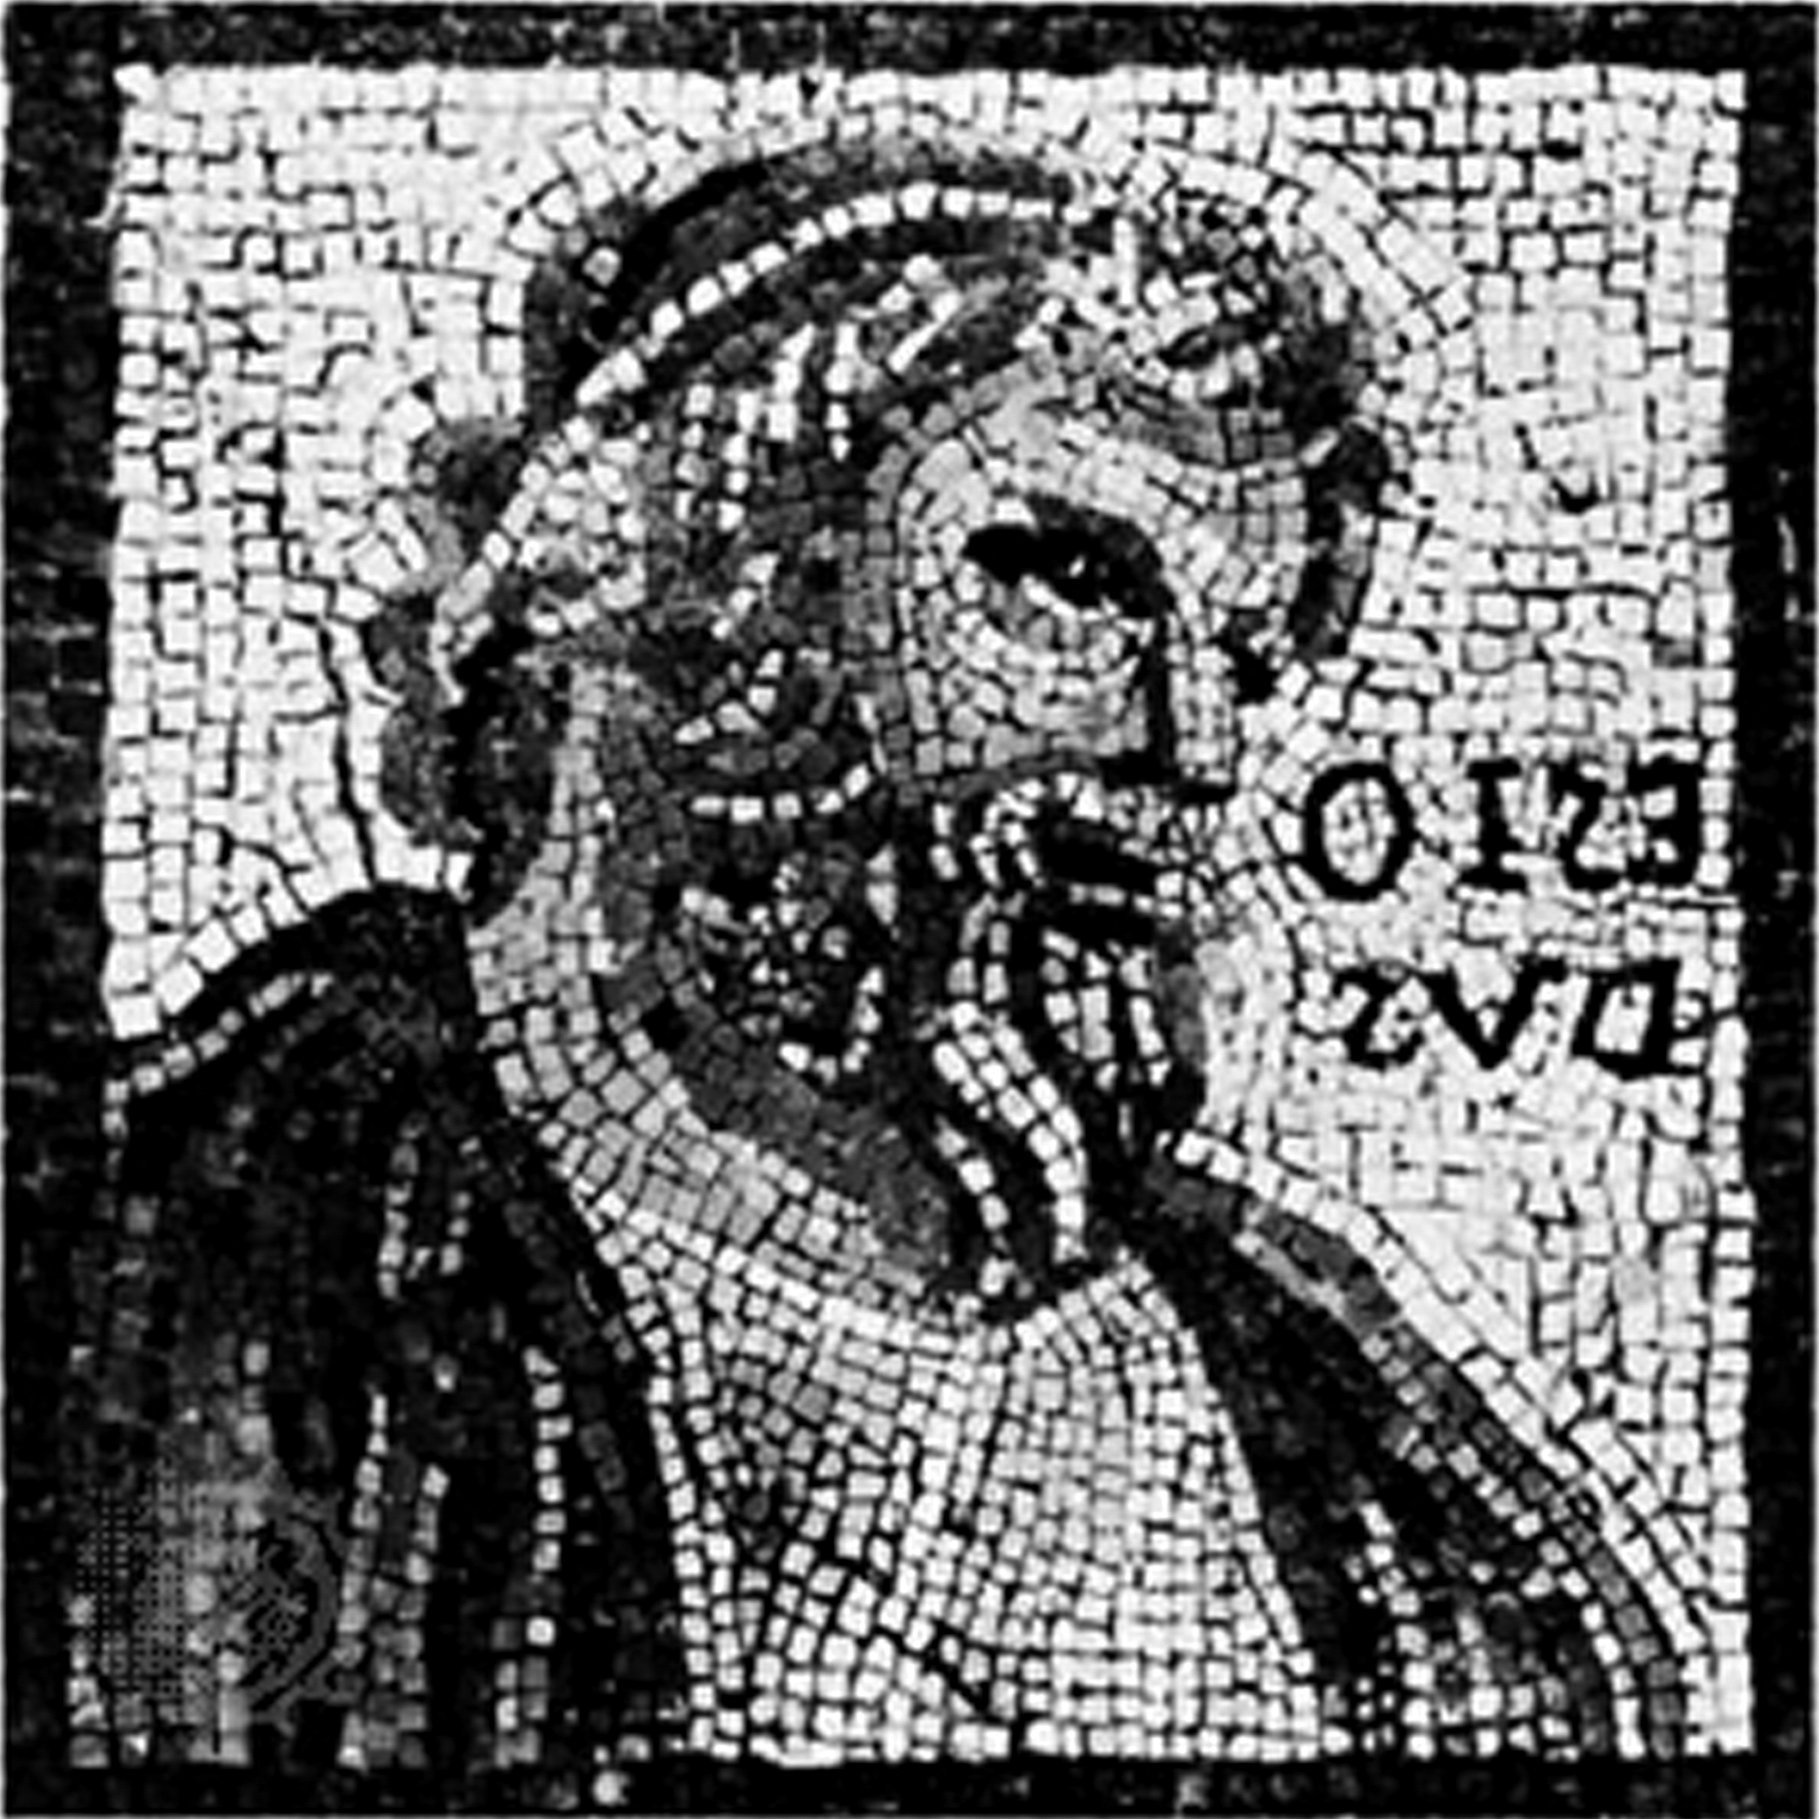 Hesiod, from the Monnus mosaic, c.200